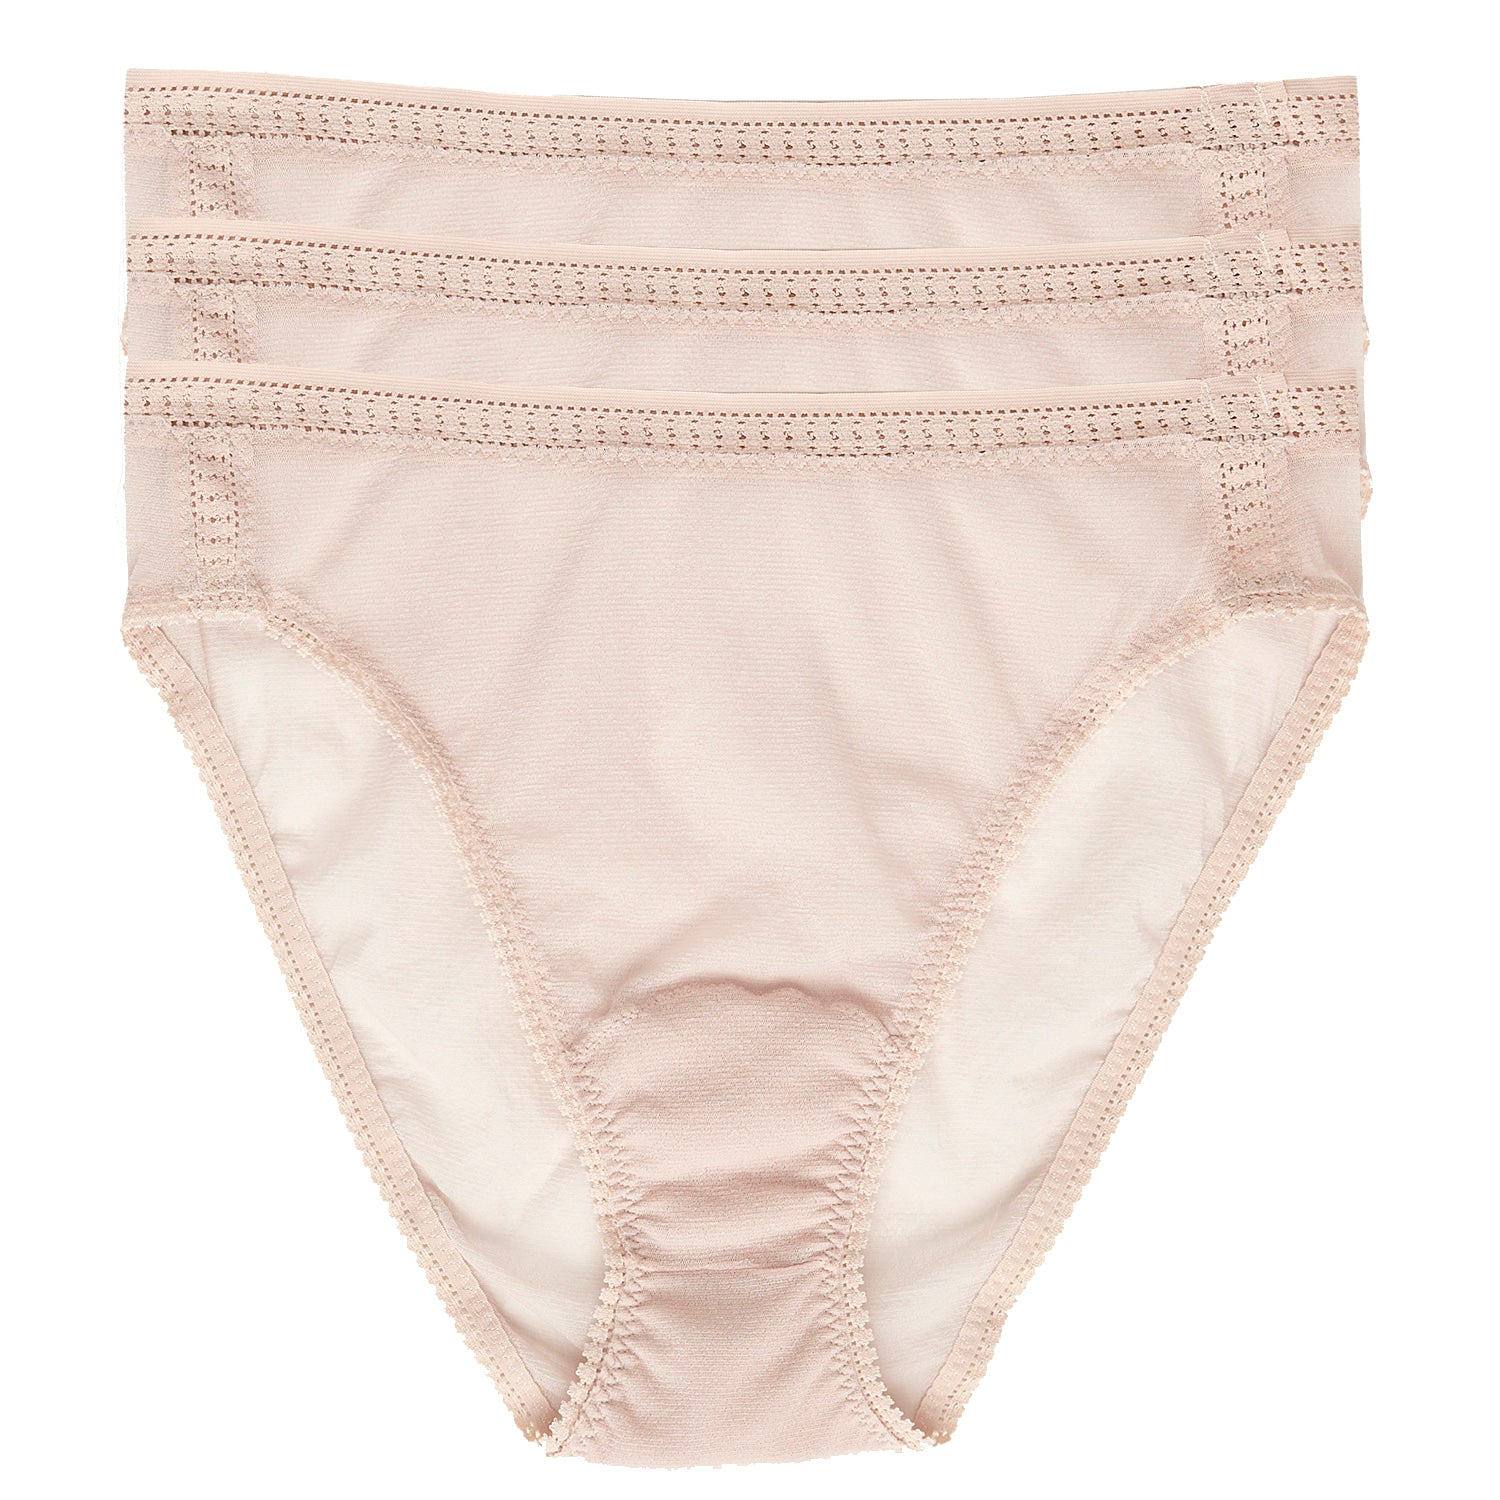 Gossamer Mesh Hi Cut Brief 3-Pack - Champagne